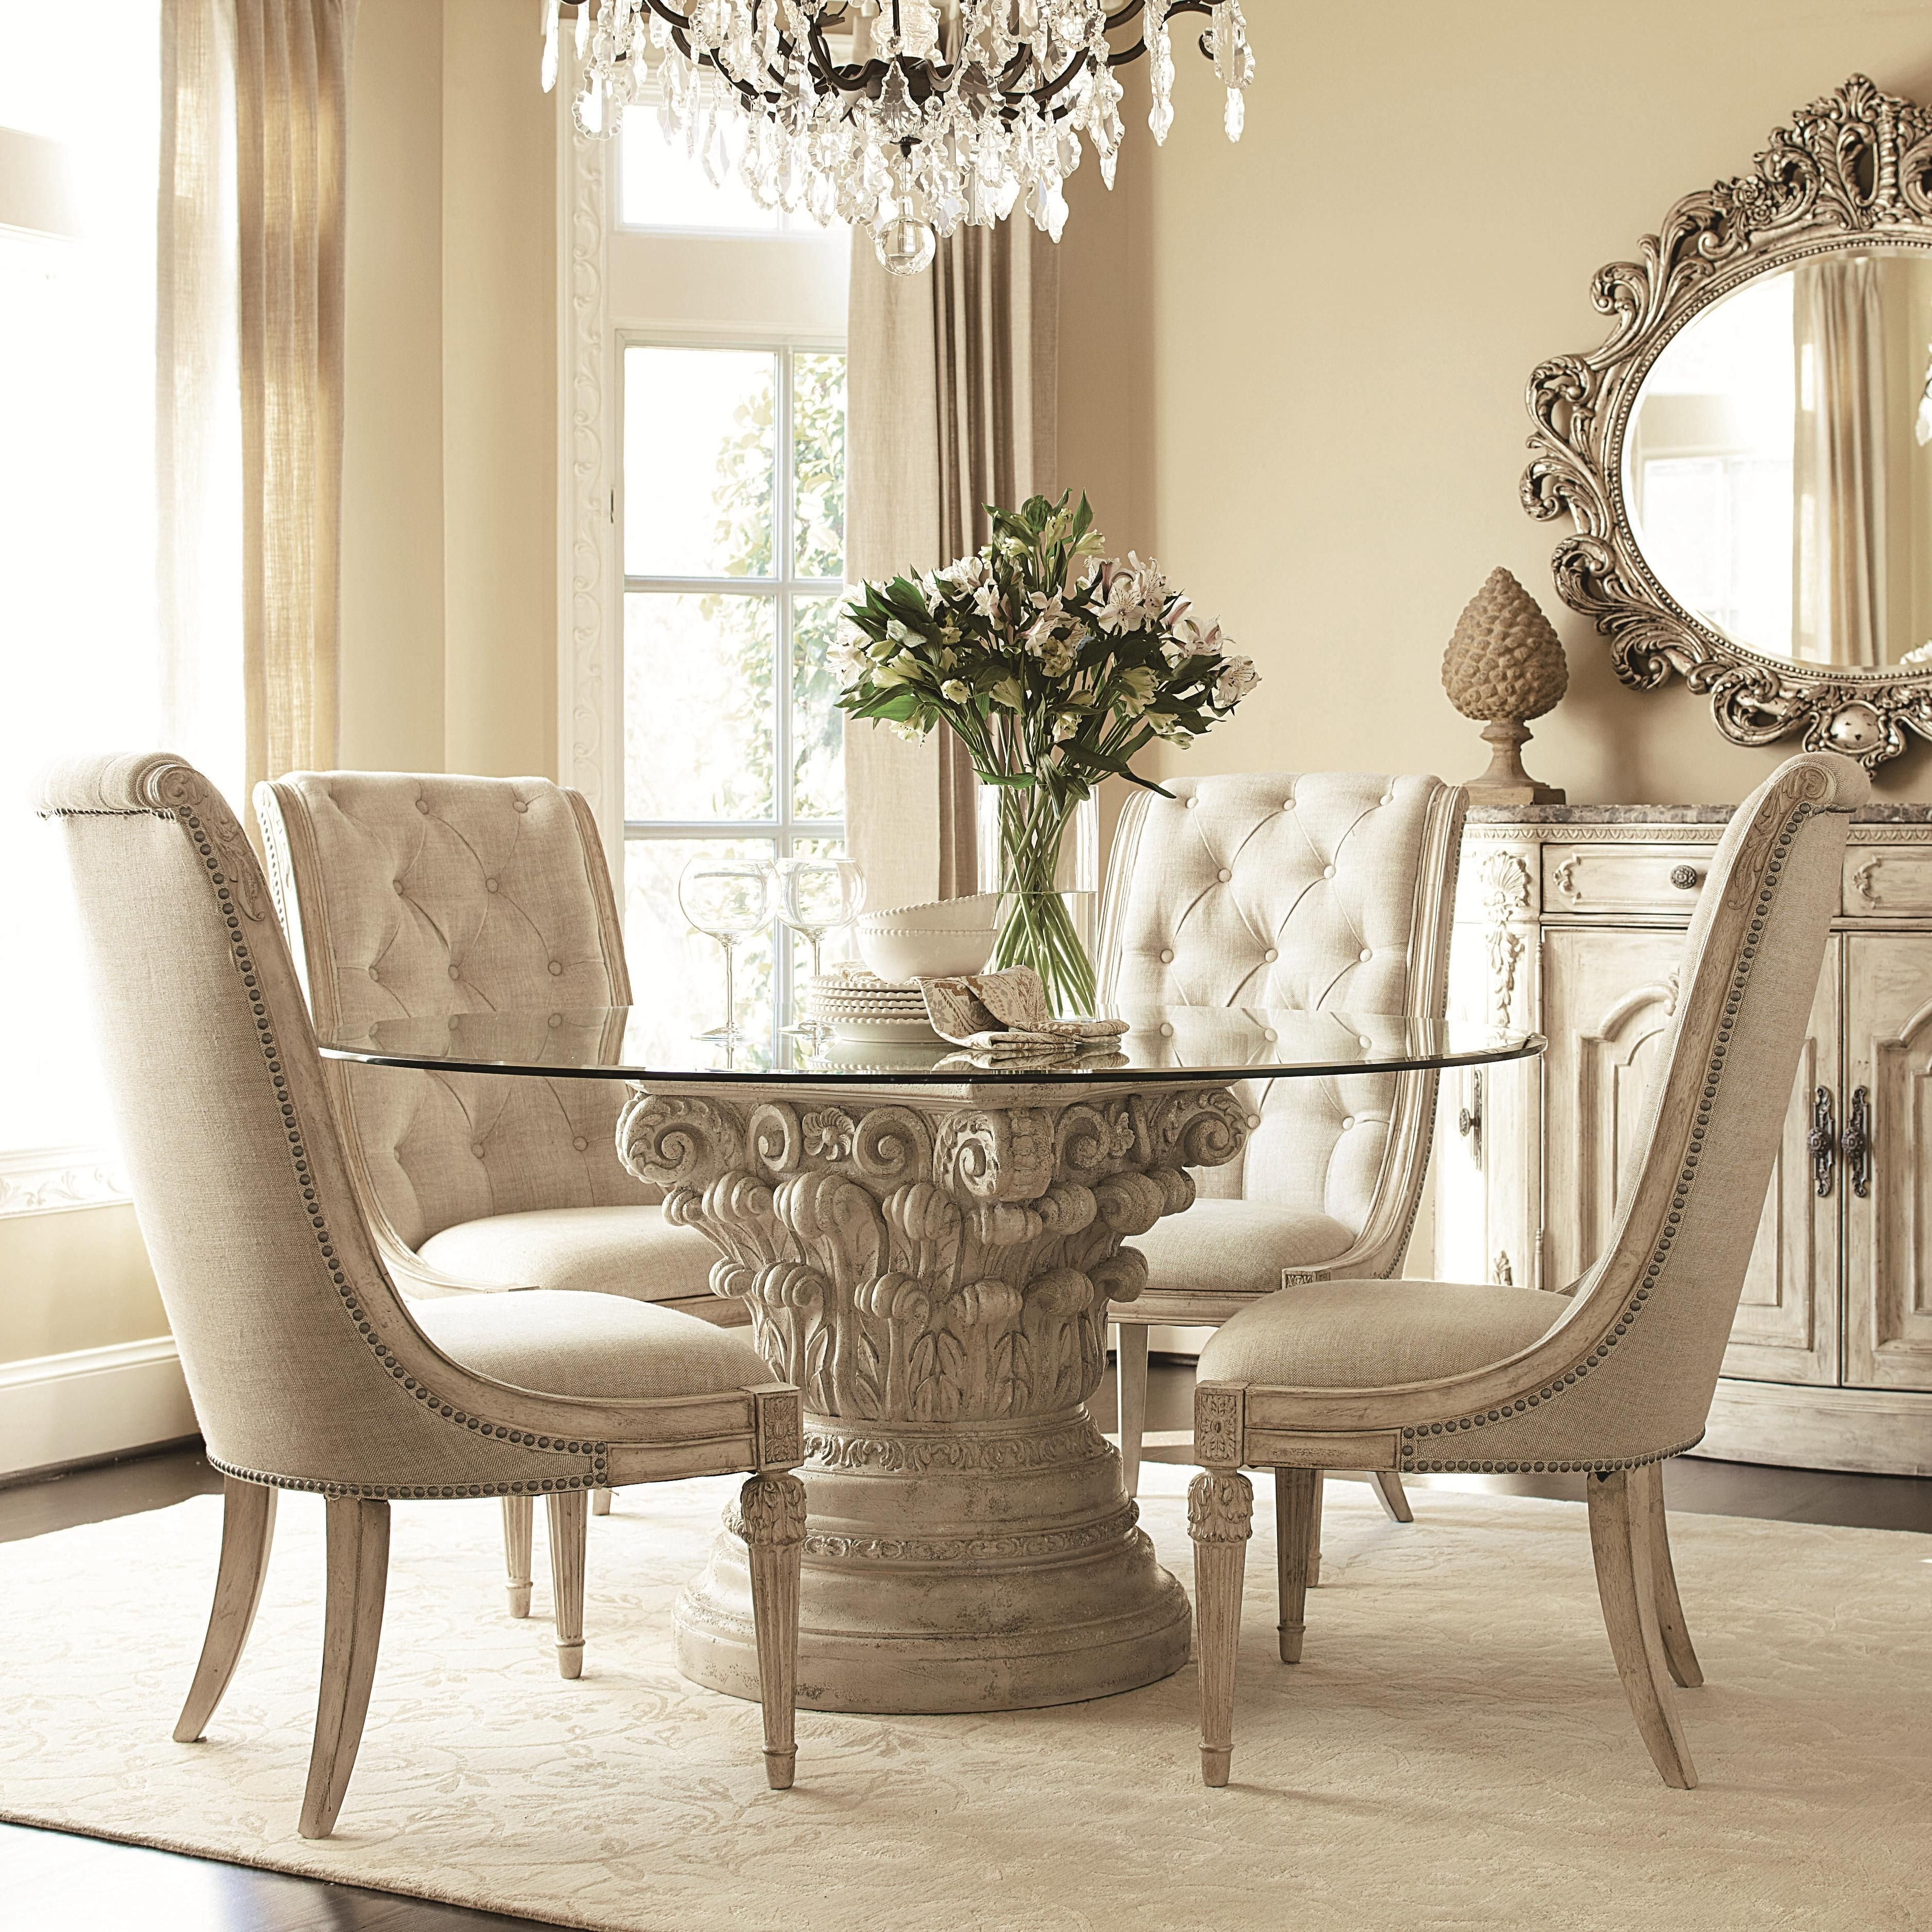 Jessica Mcclintock Home – The Boutique Collection 5 Piece Round In Most Up To Date Laurent 5 Piece Round Dining Sets With Wood Chairs (View 9 of 25)